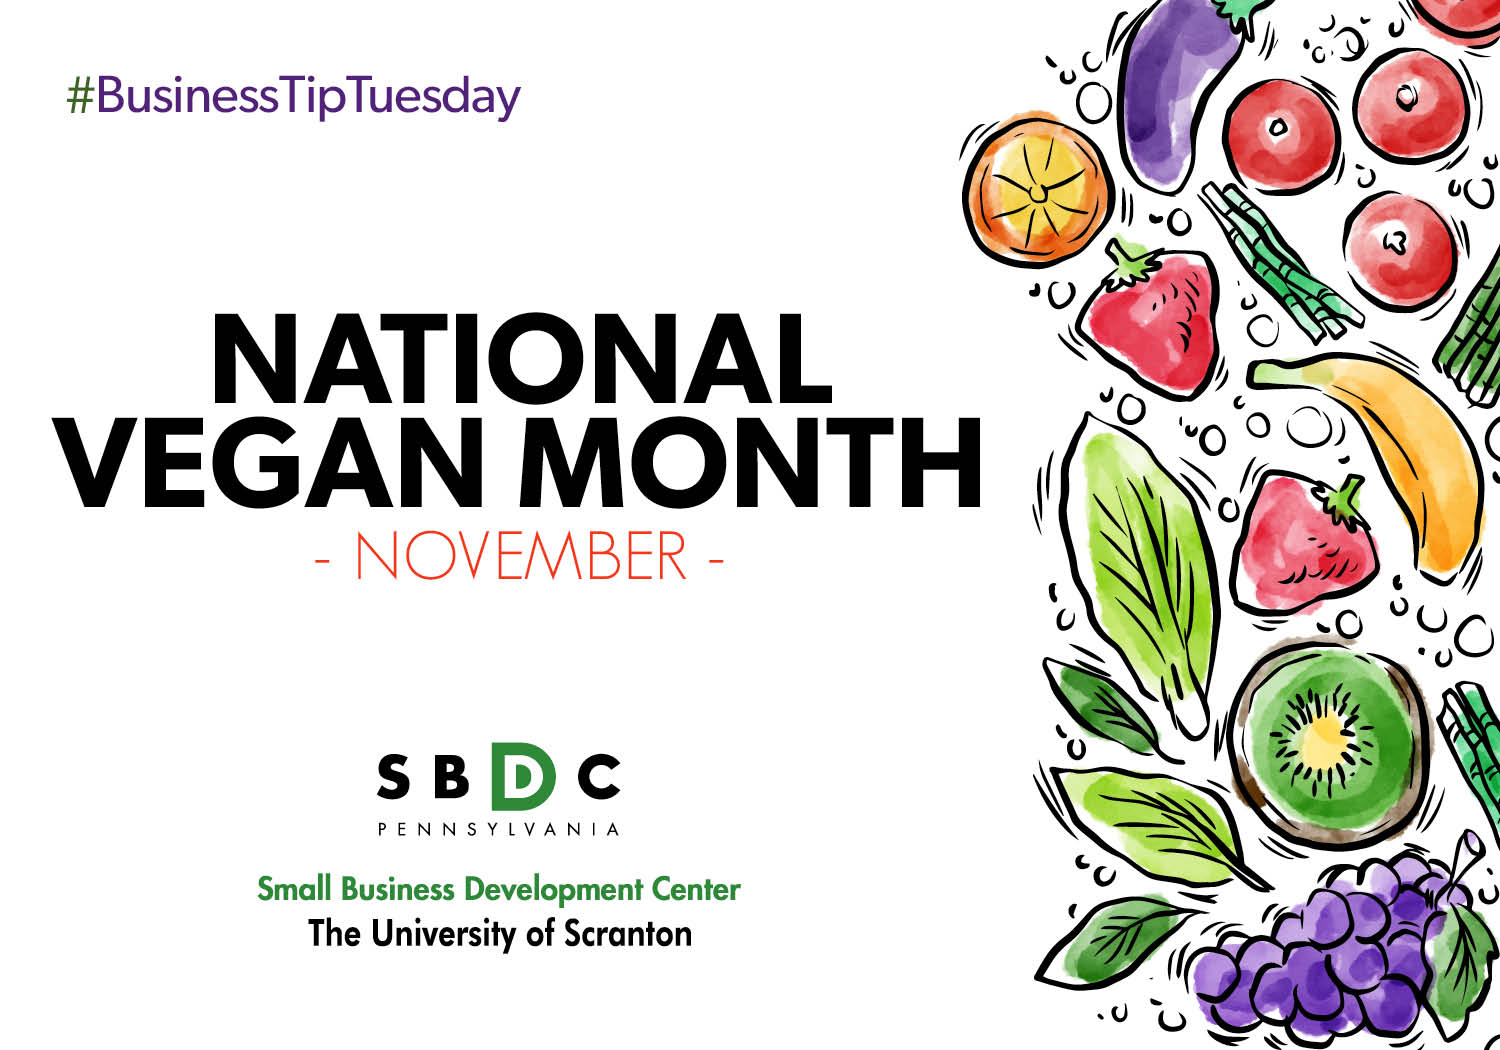 #BusinessTipTuesday – National Vegan Month